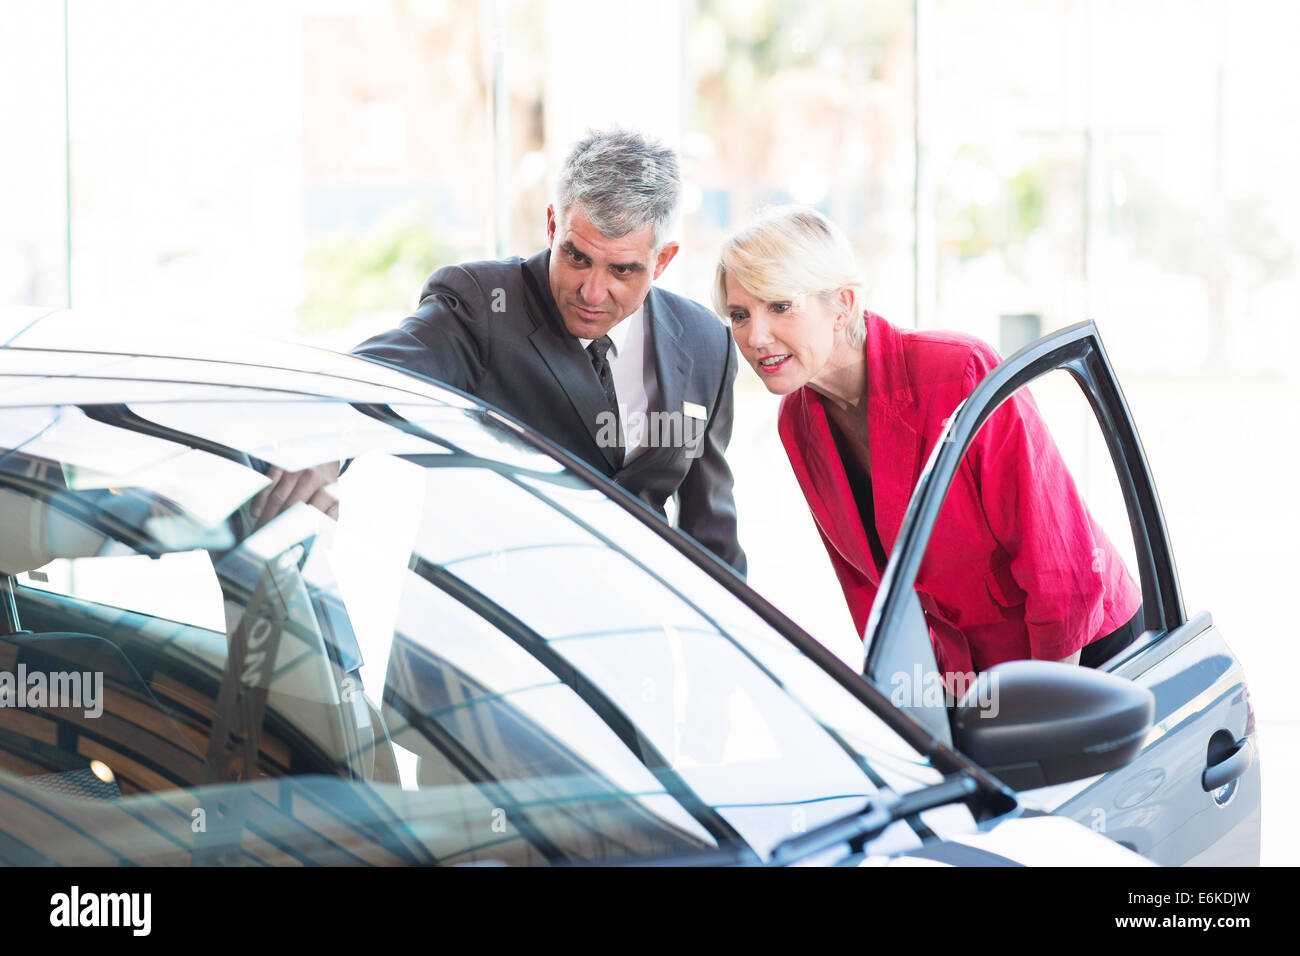 mid age salesman showing new car to potential customer - Stock Image